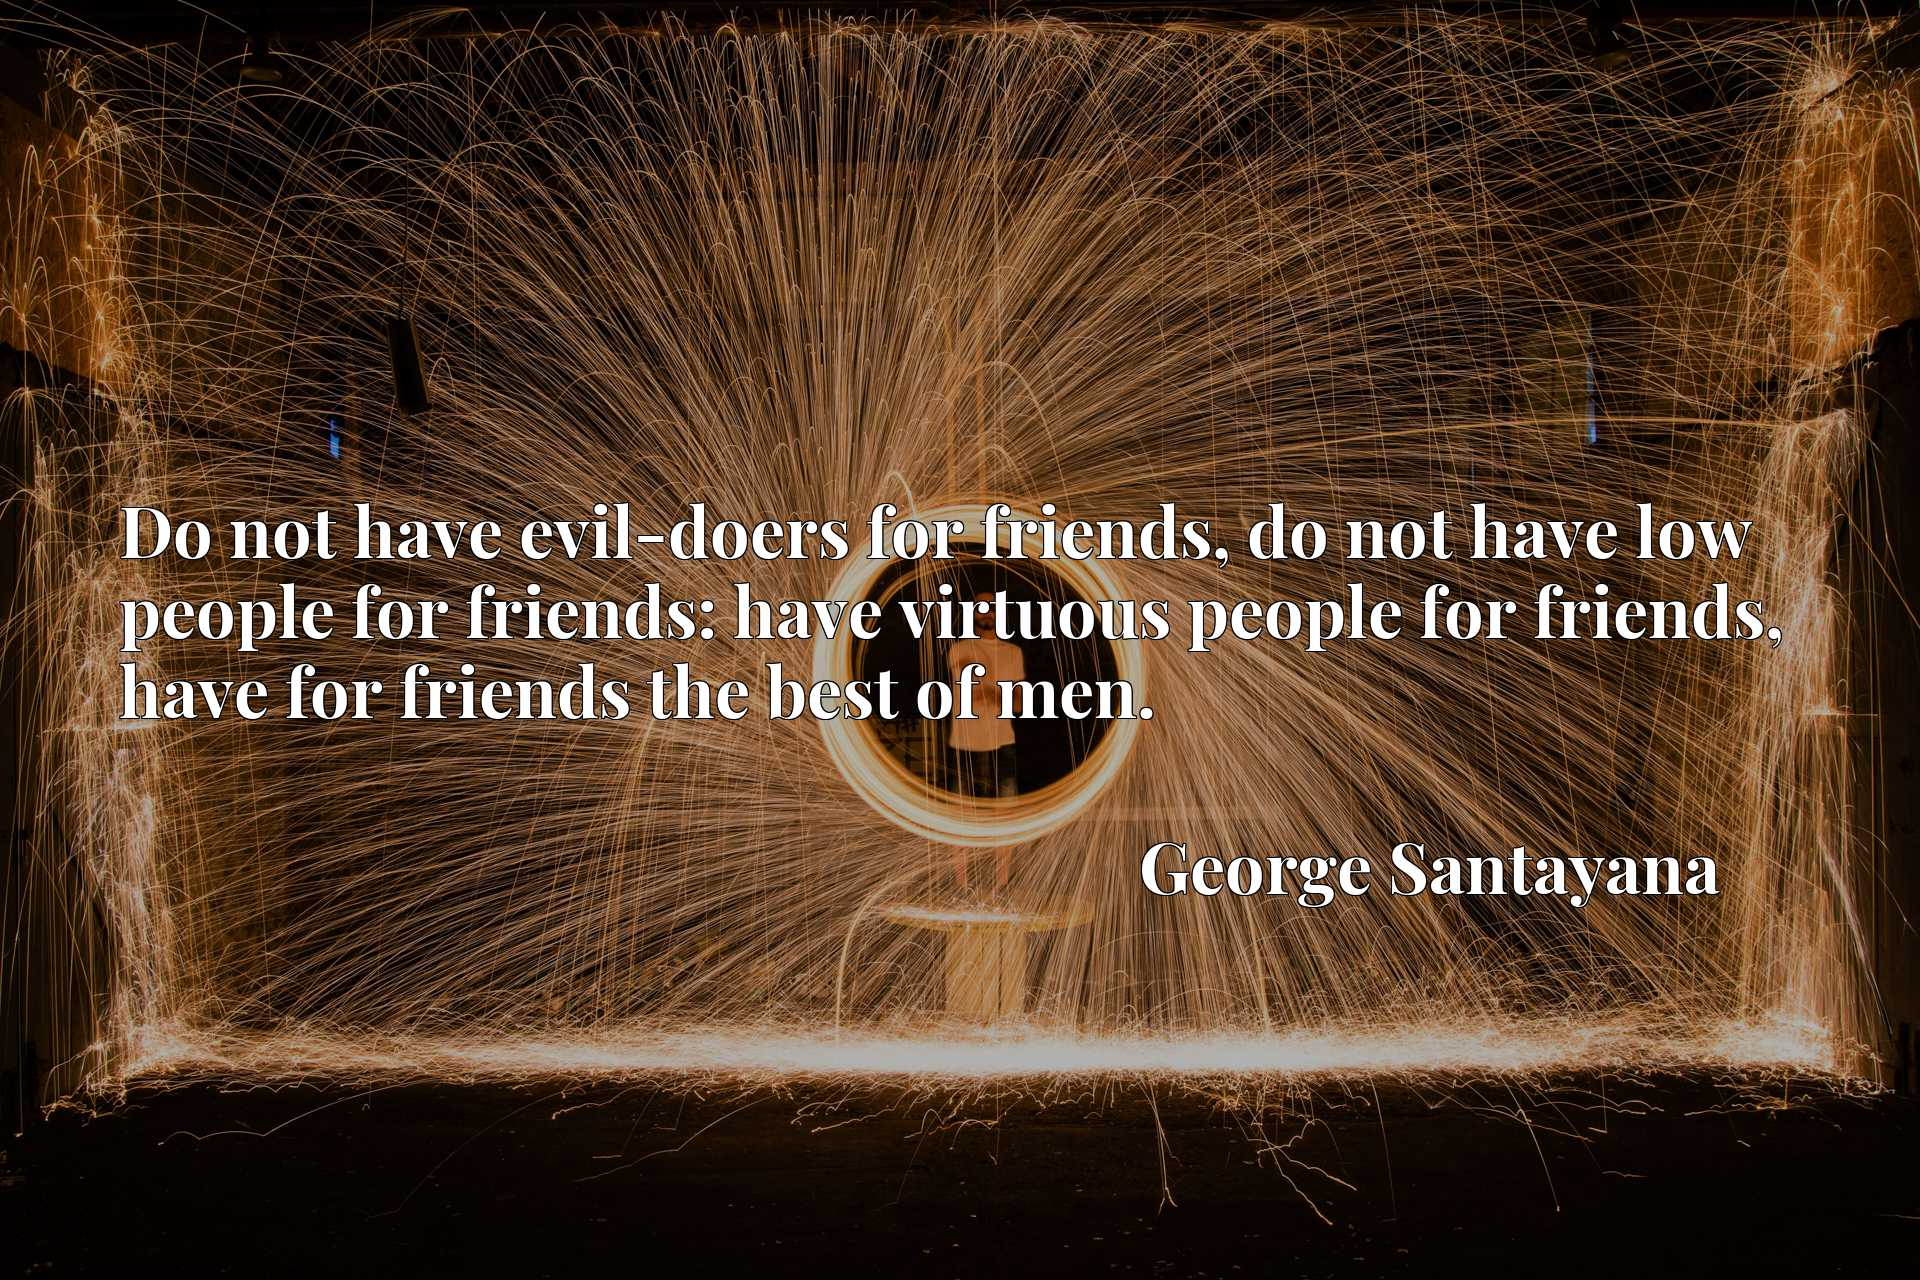 Do not have evil-doers for friends, do not have low people for friends: have virtuous people for friends, have for friends the best of men.